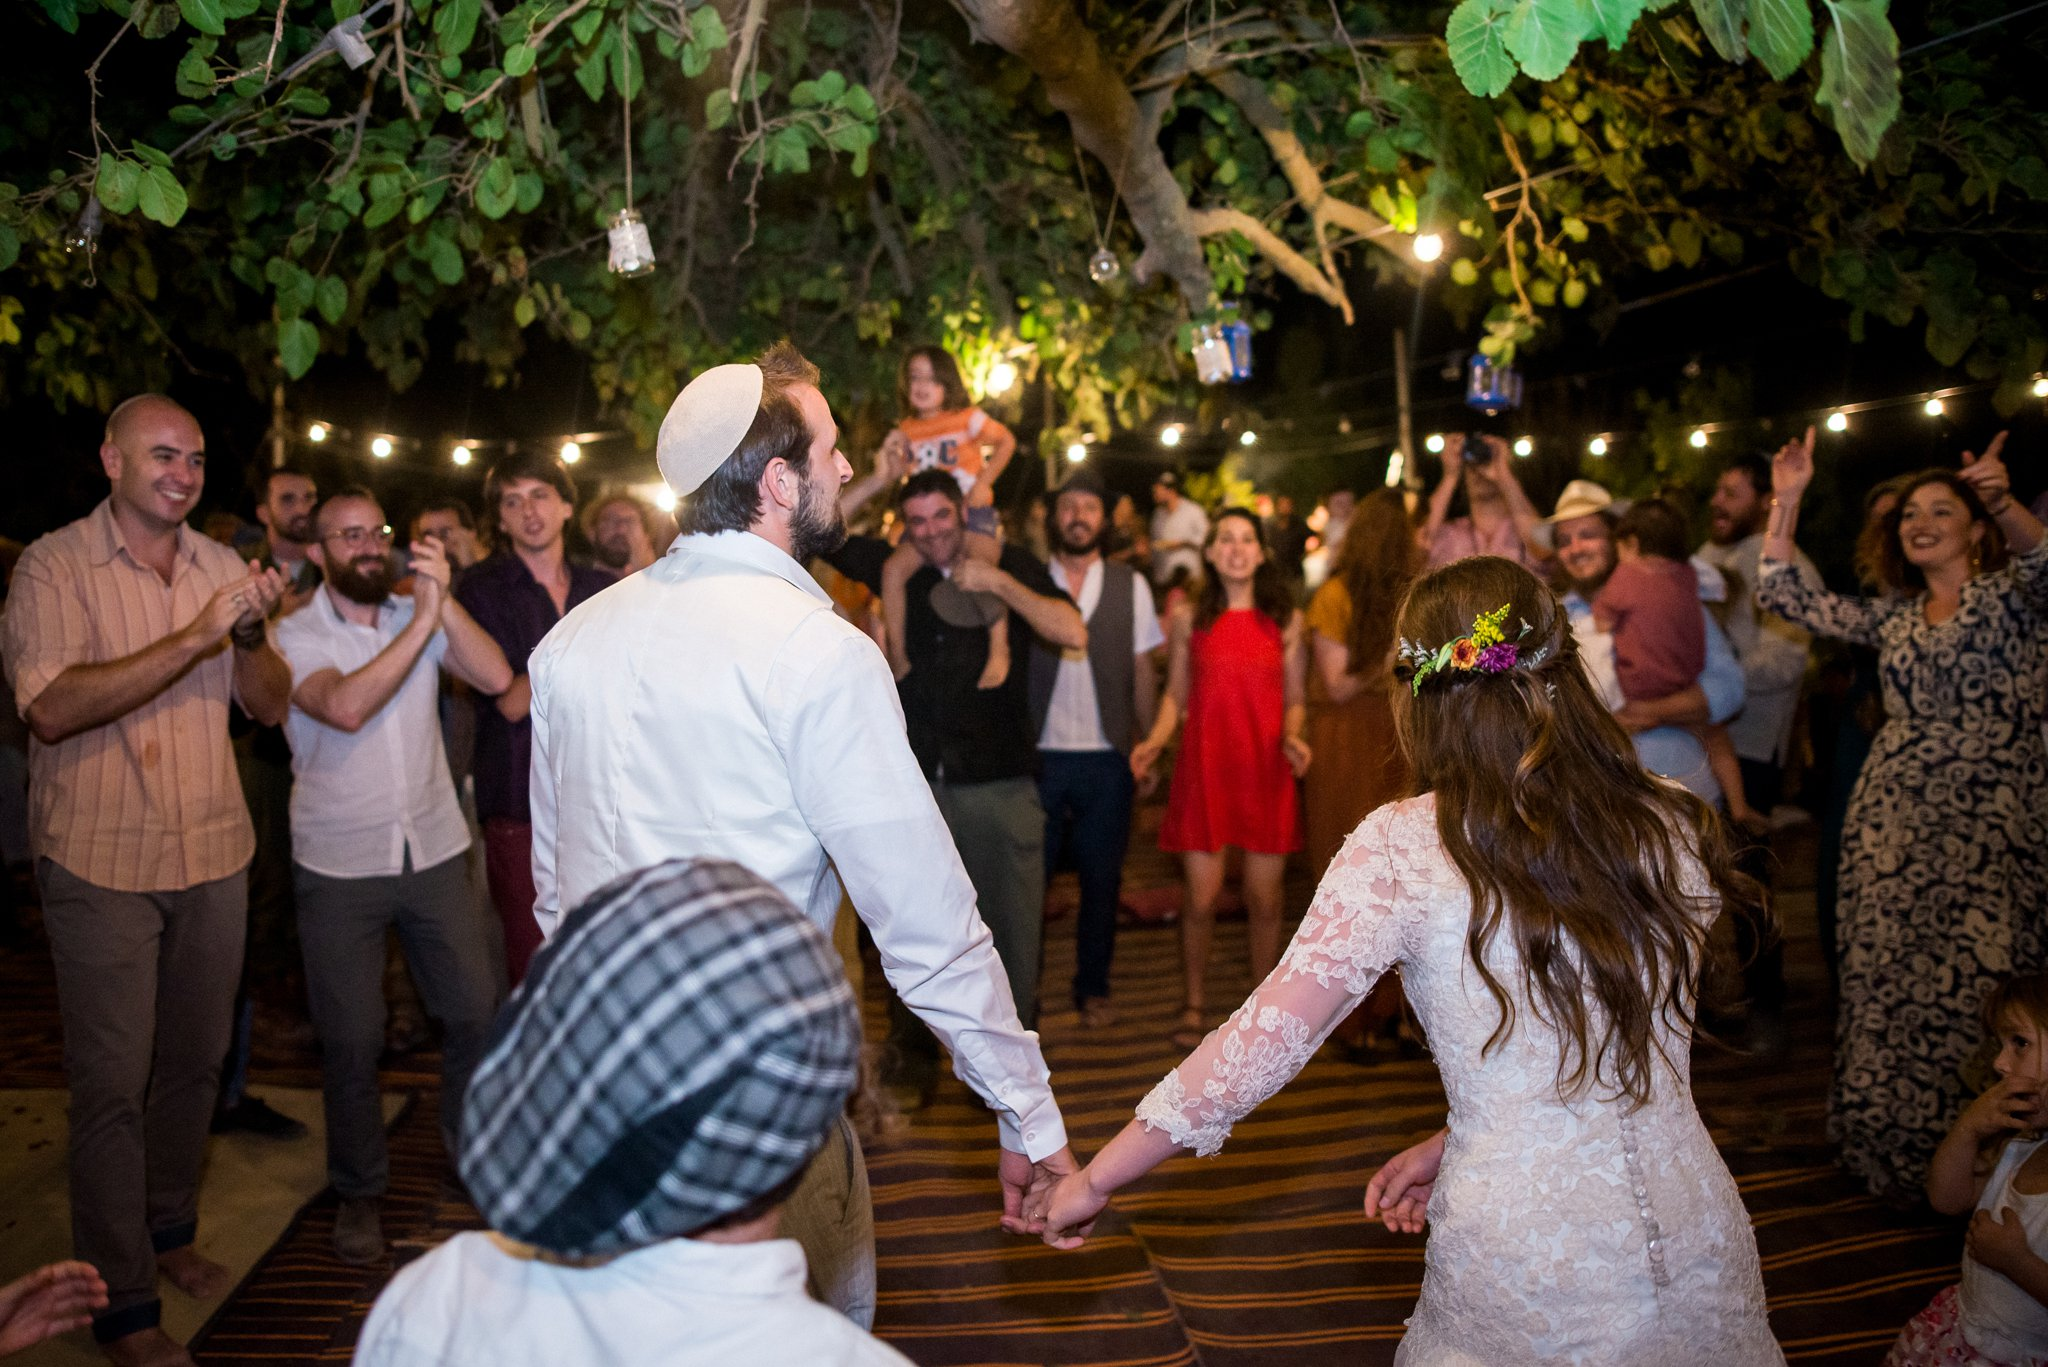 jewish-wedding-binyamina-israel-kate-giryes-photography-202_WEB.jpg